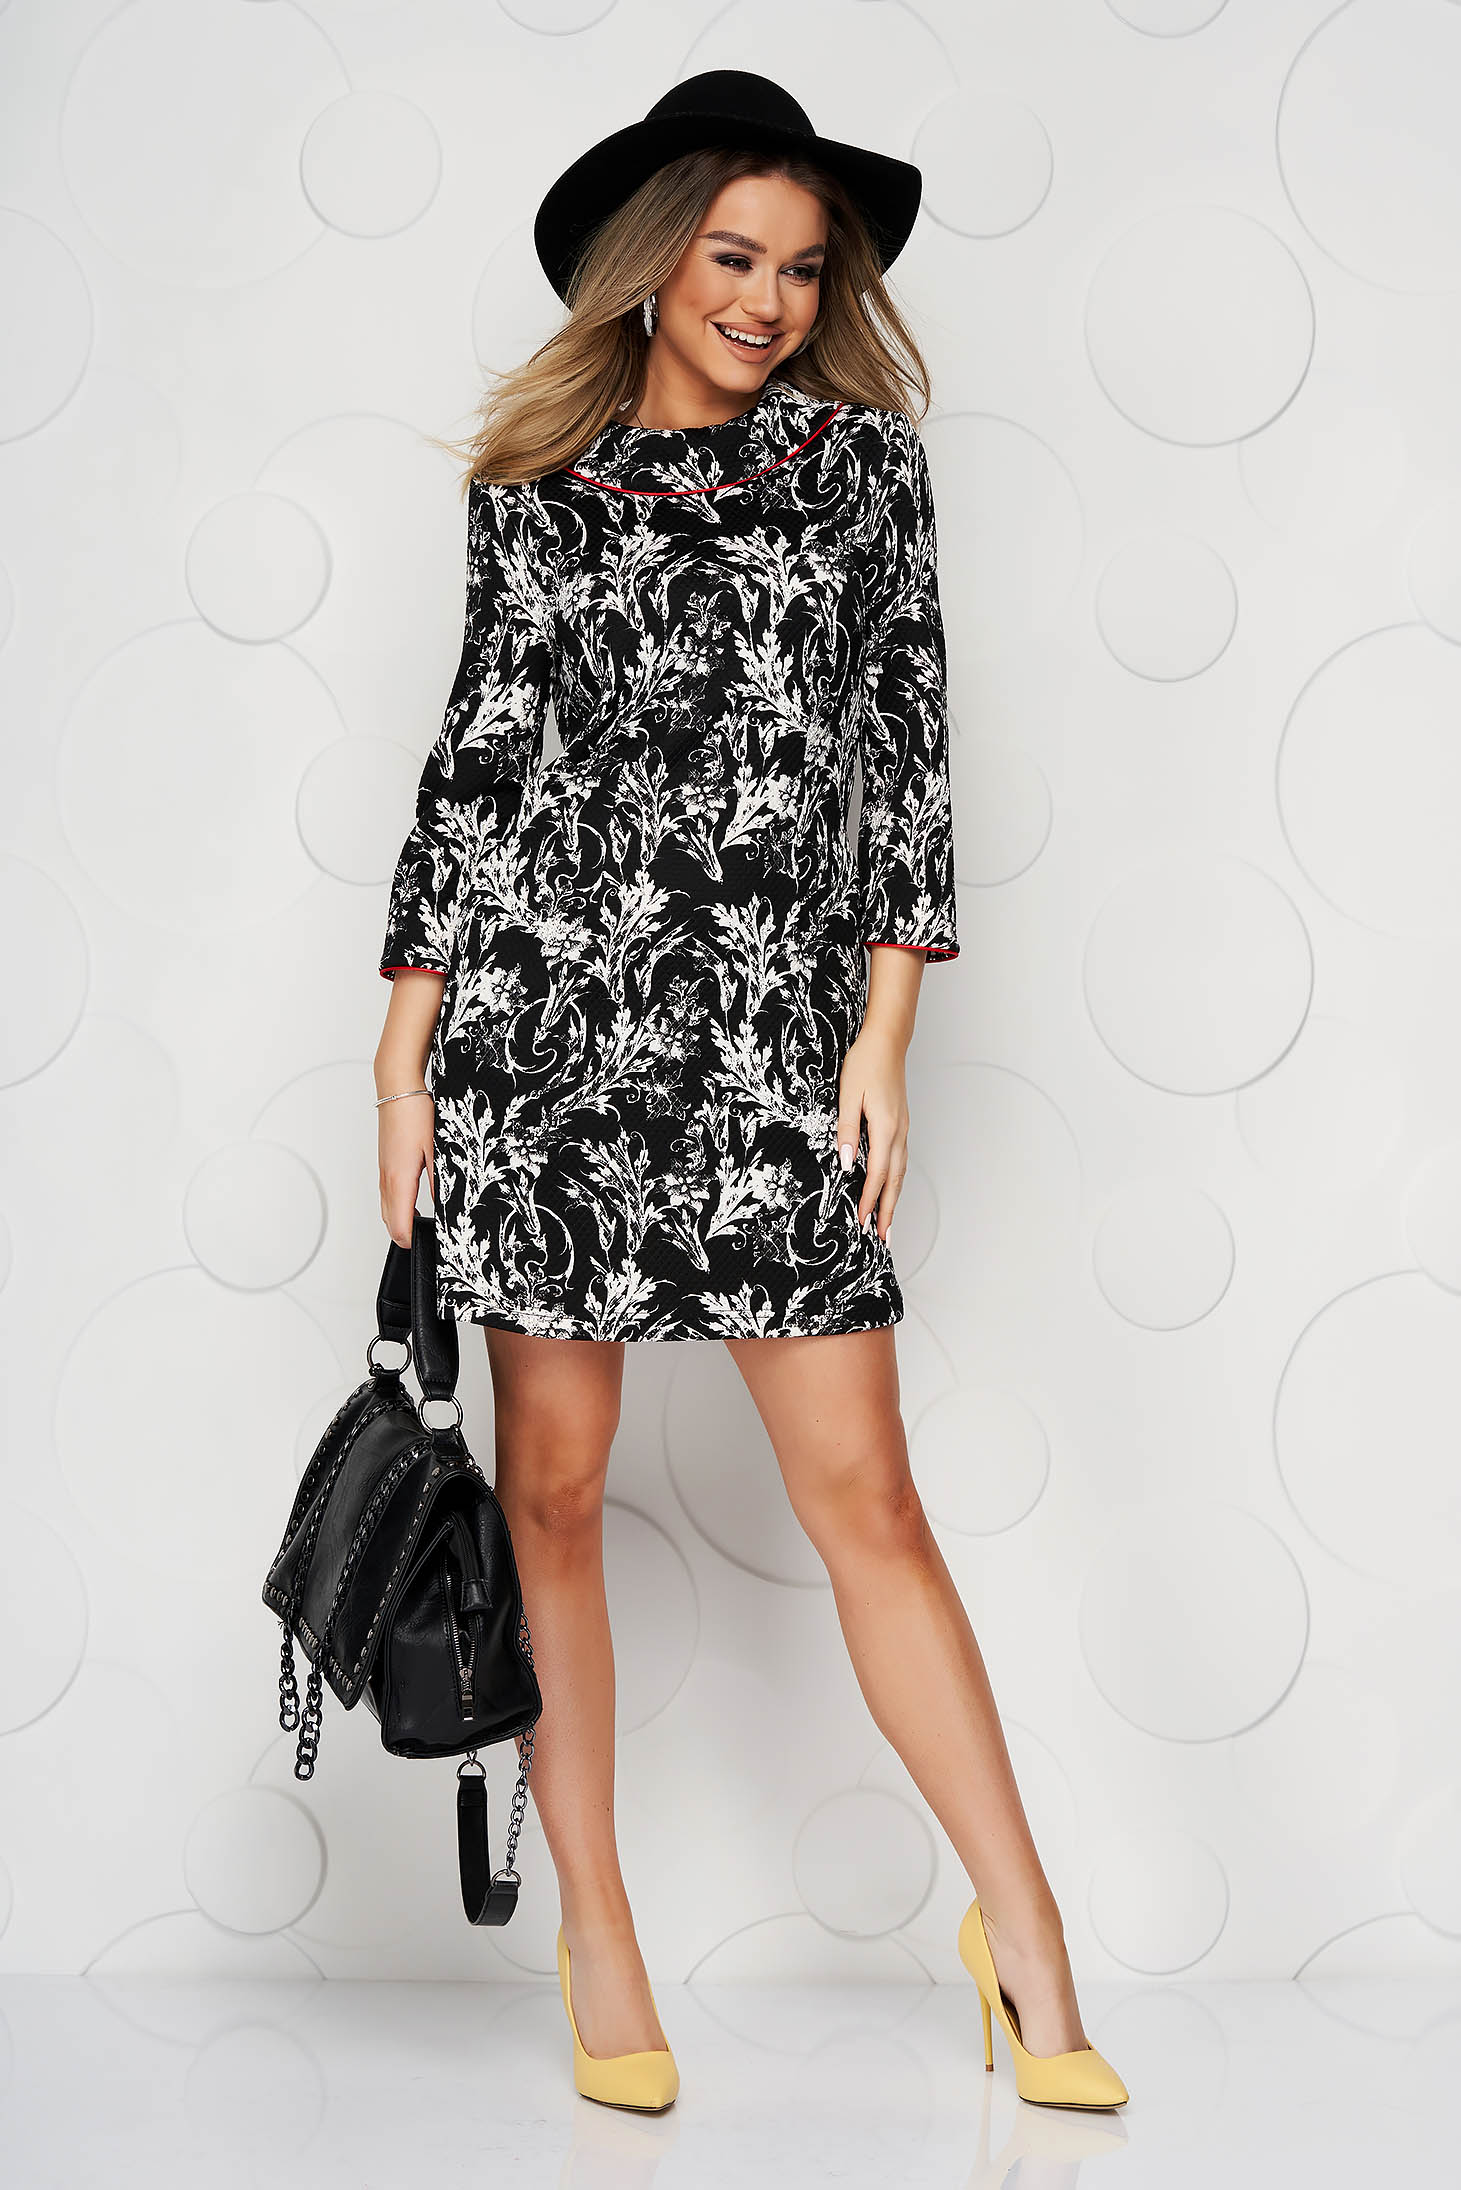 Black dress straight double collar slightly elastic fabric with floral print